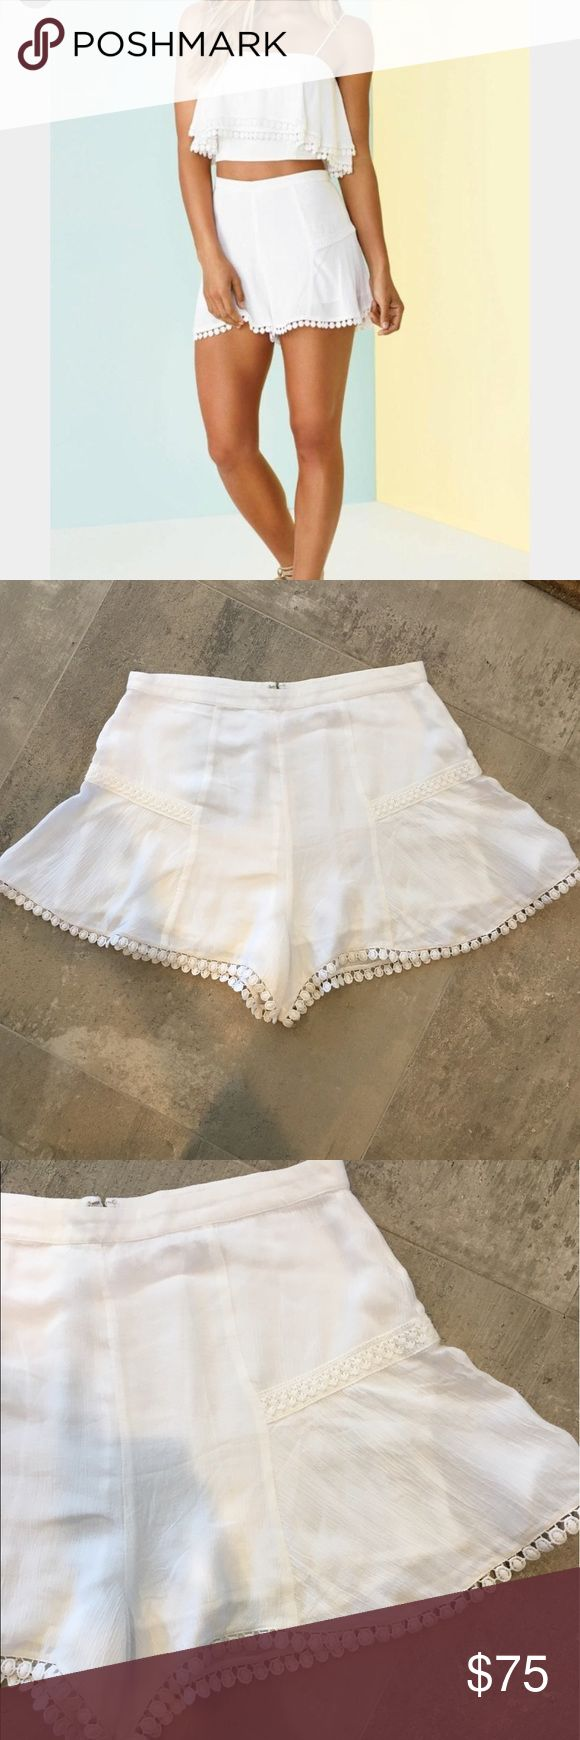 """Lovers + Friends 'Oasis' shorts High waisted shorts, lined. Pom Pom detailing on hem. 12"""" in length. Never worn and so cute!! Lovers + Friends Shorts"""